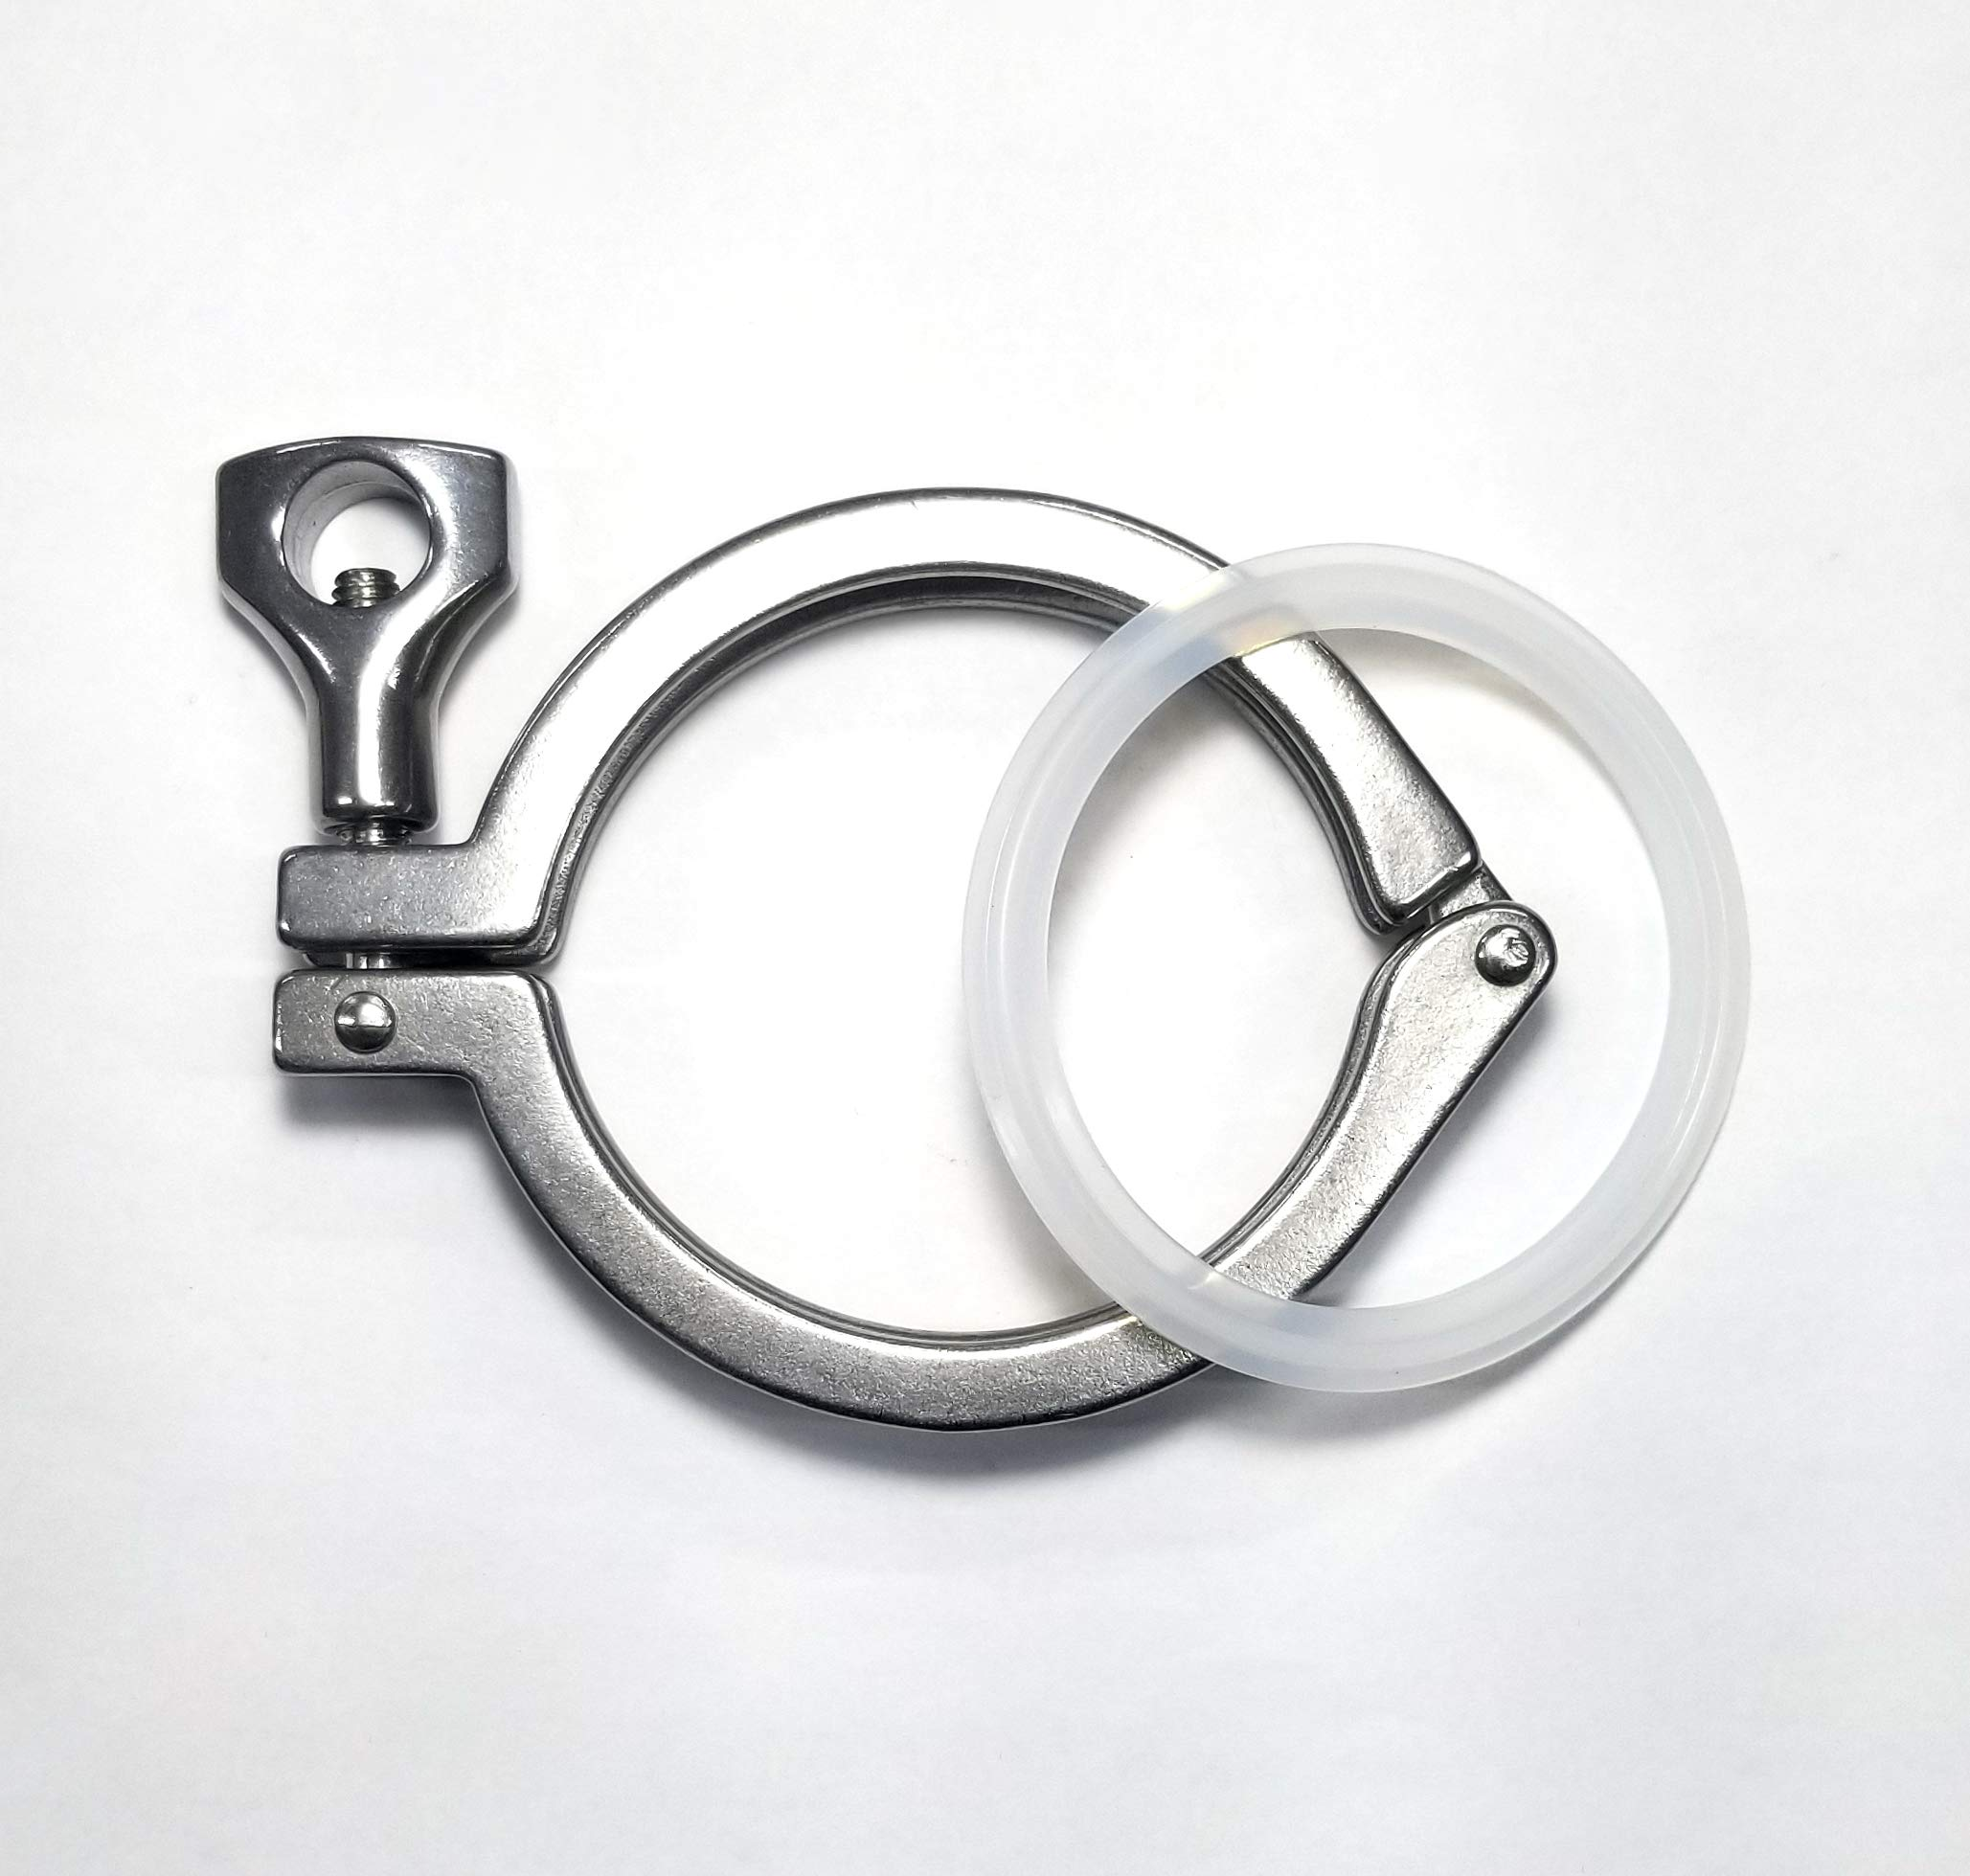 Stainless Sanitary Clamp - Tri-Clover 2.5'' Tube OD - Heavy Duty Single Pin w/Gasket (5 Pack) - SS304 - Homebrew Clover Clamp